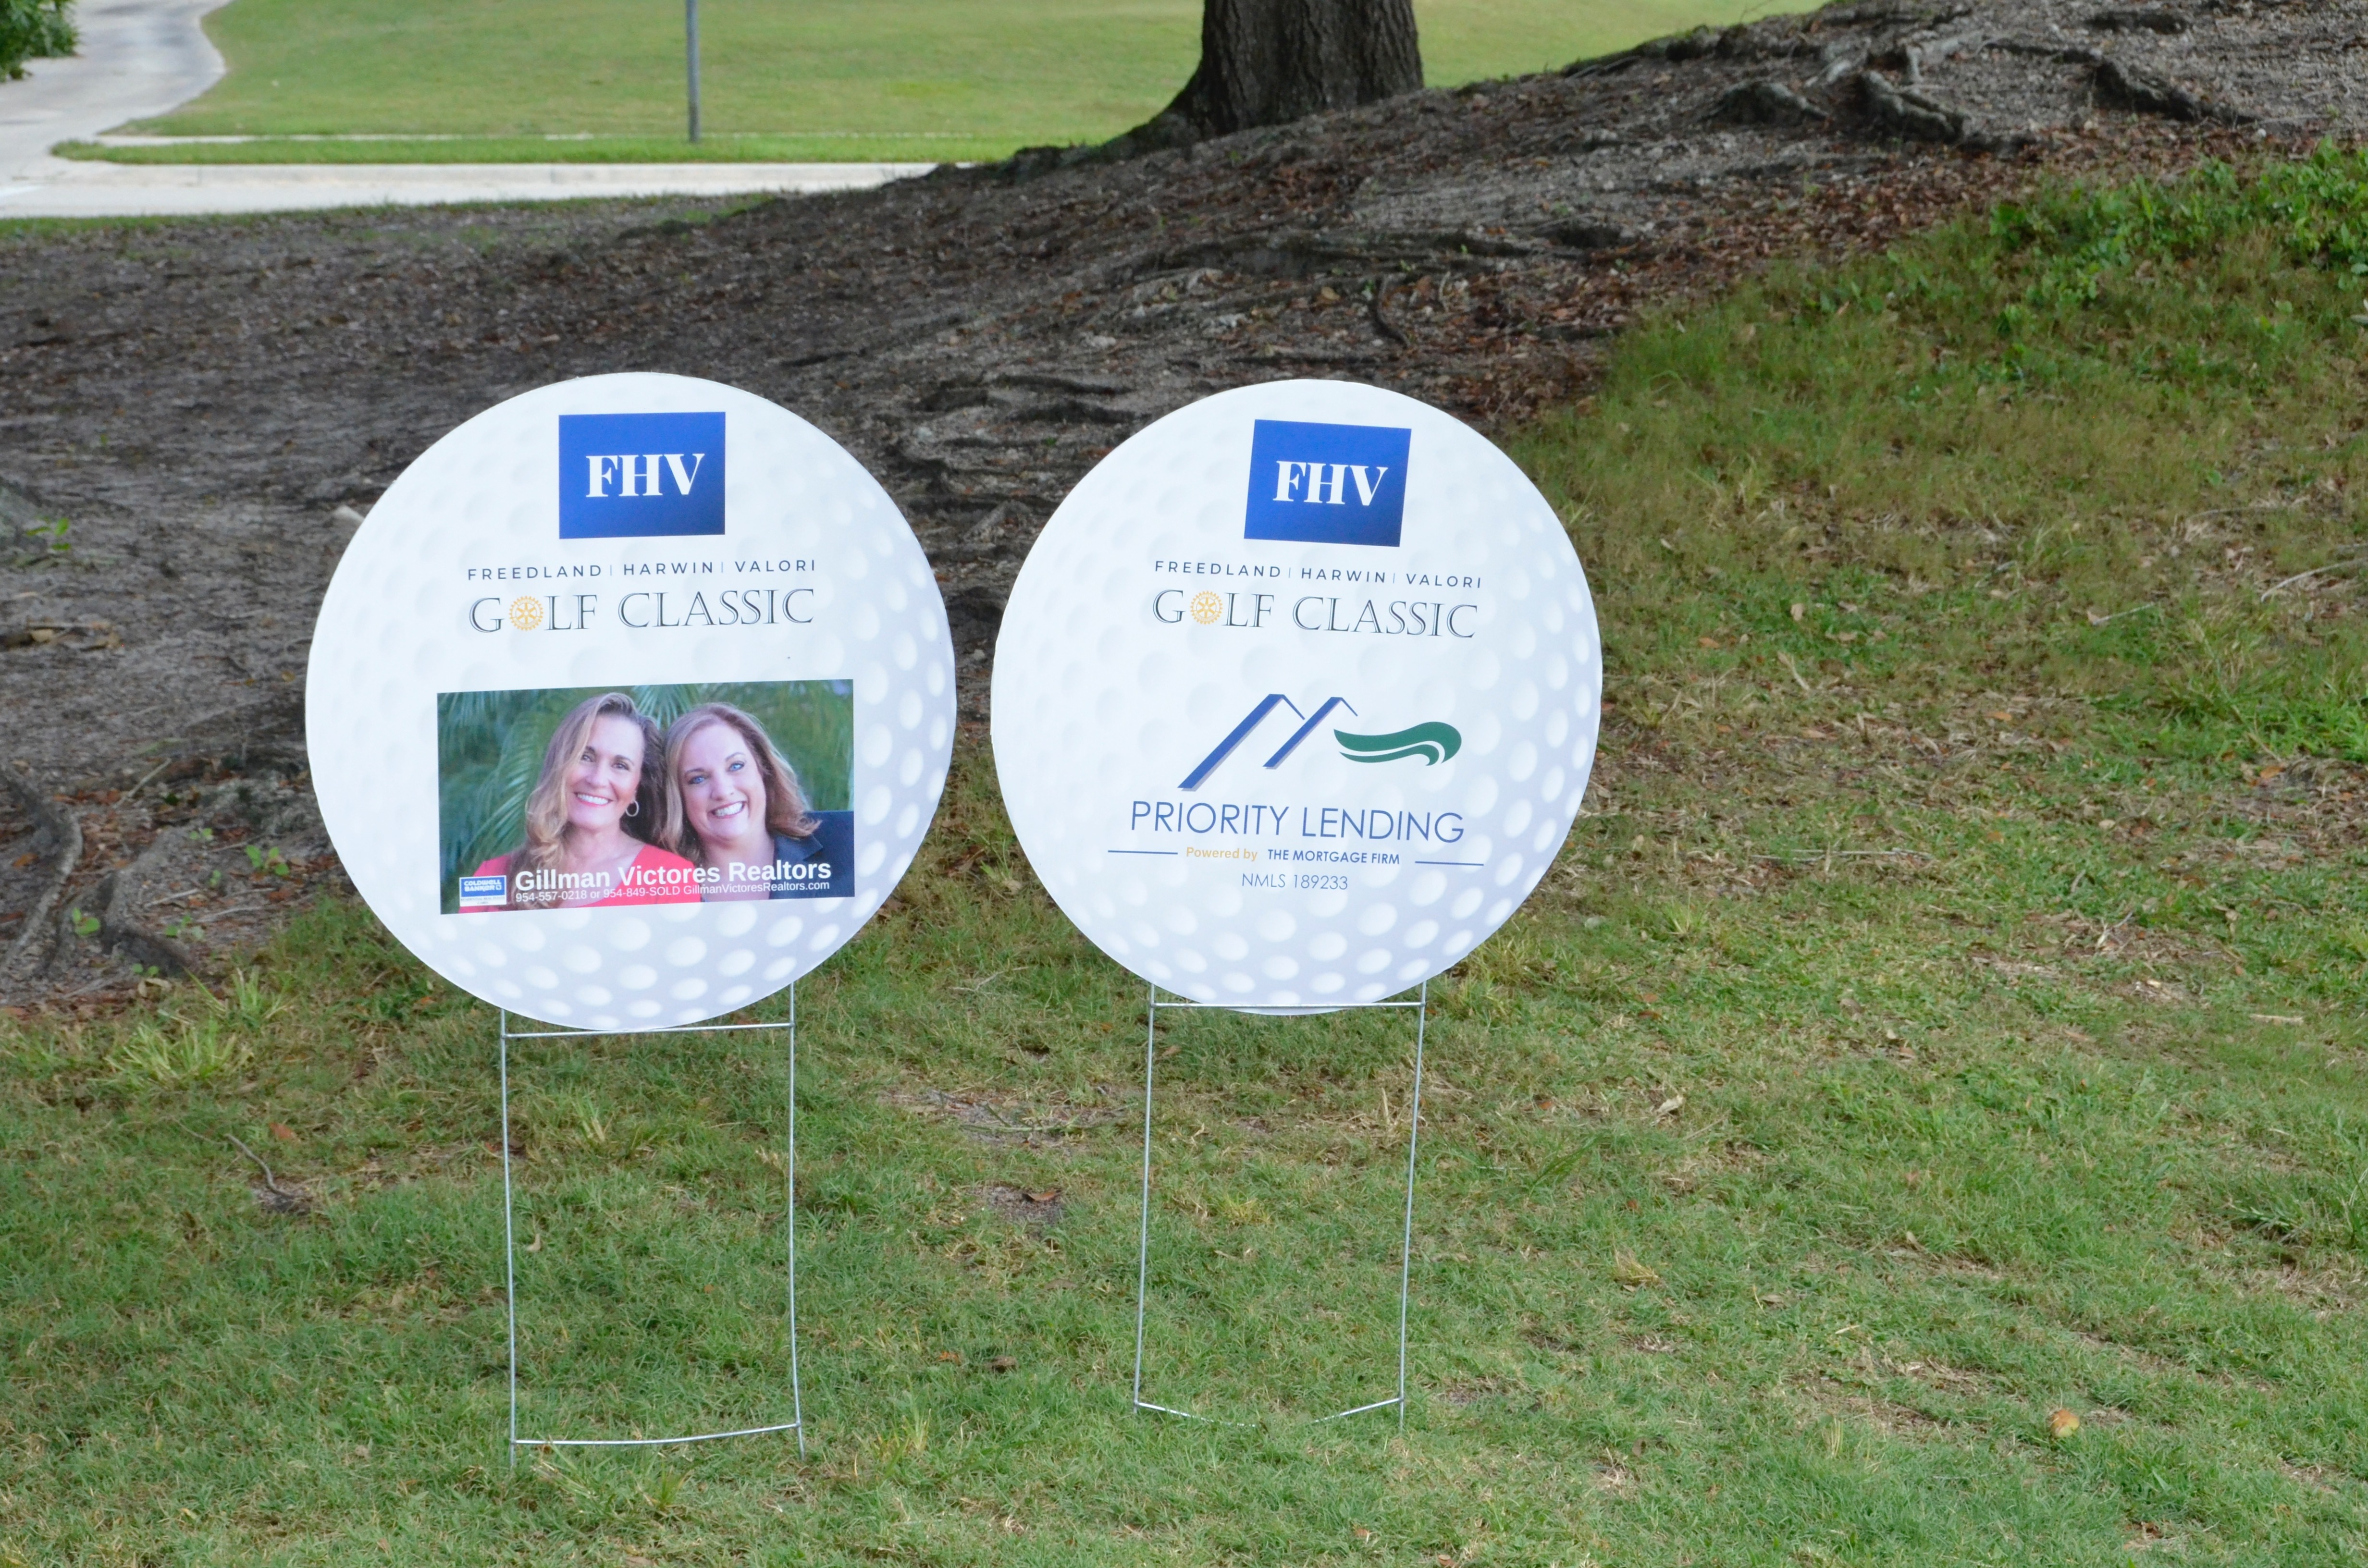 33rd Annual Rotary Golf Classic Sponsored by FHVLEGAL.COM gallery image #11